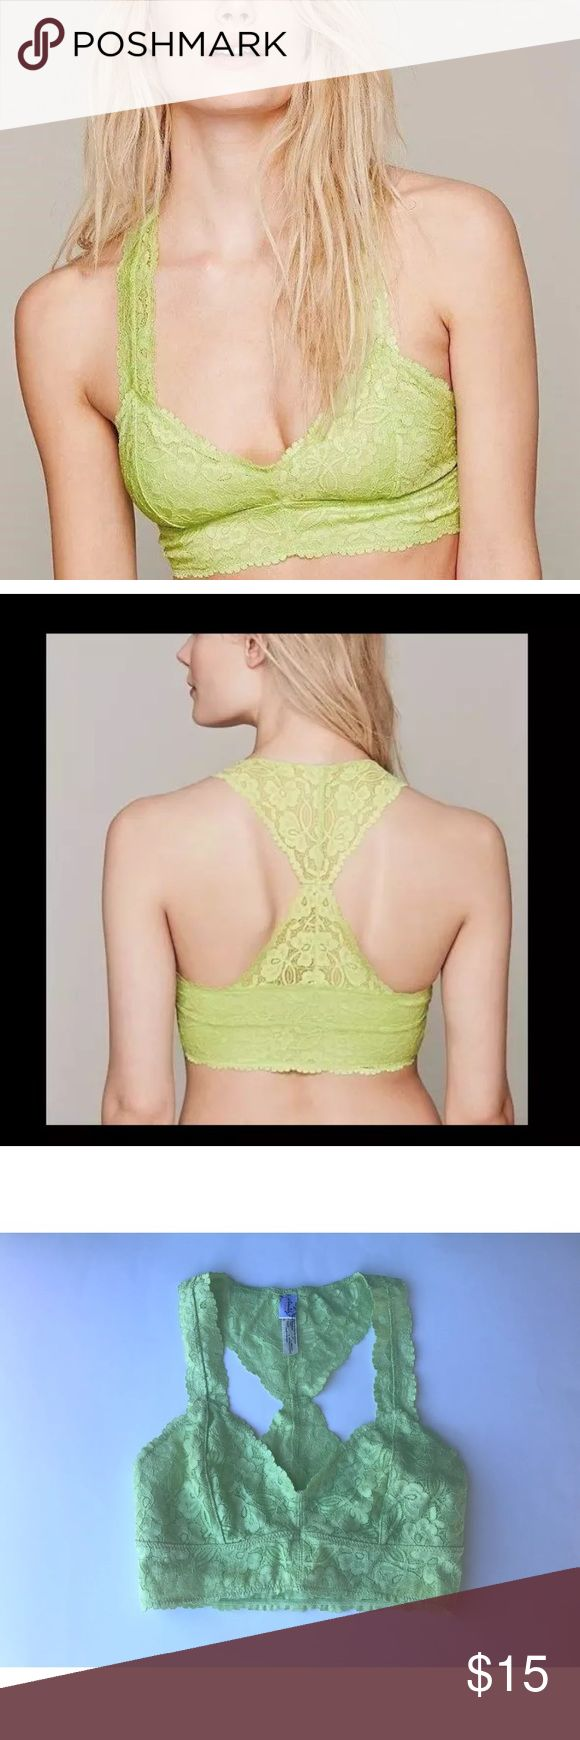 Intimately Free People Galloon Lace Racerback Intimately Free People Galloon Lace Racerback Crop  size : XS (fits 32A and 32B in US/Canada and 32B and 32C in UK)   color: Lime Green    Stretchy Floral lace with mesh lining and scalloped edges   Plunging neckline ..slips on over head Free People Intimates & Sleepwear Bras